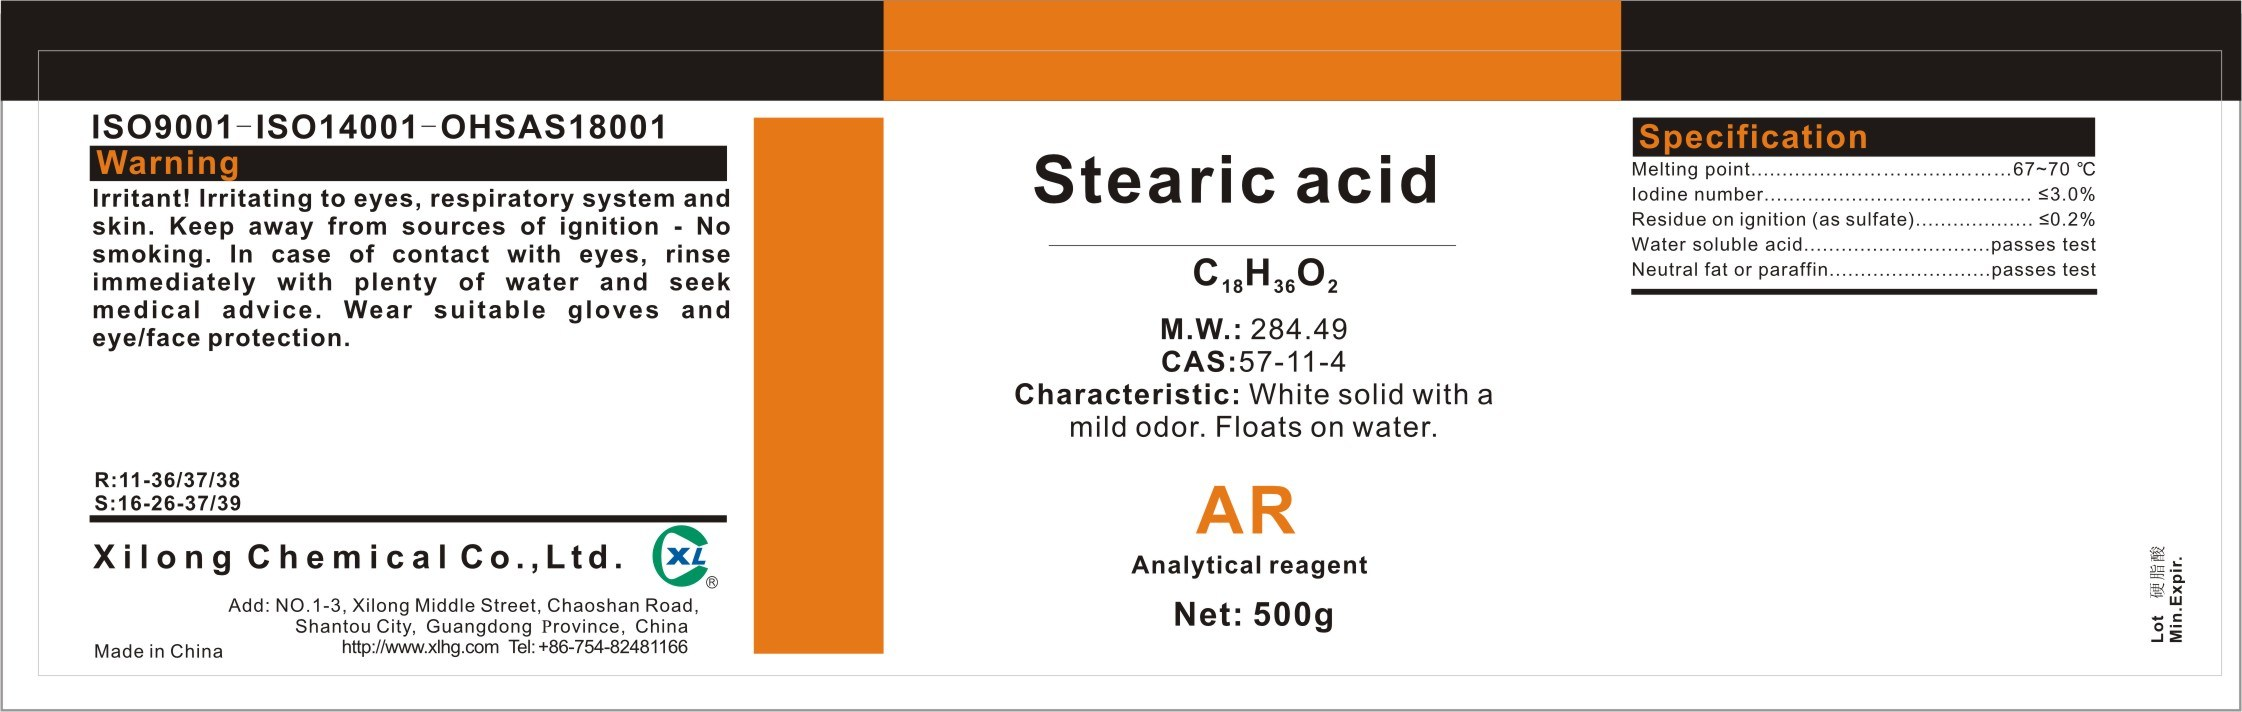 why is stearic acid insoluble in water